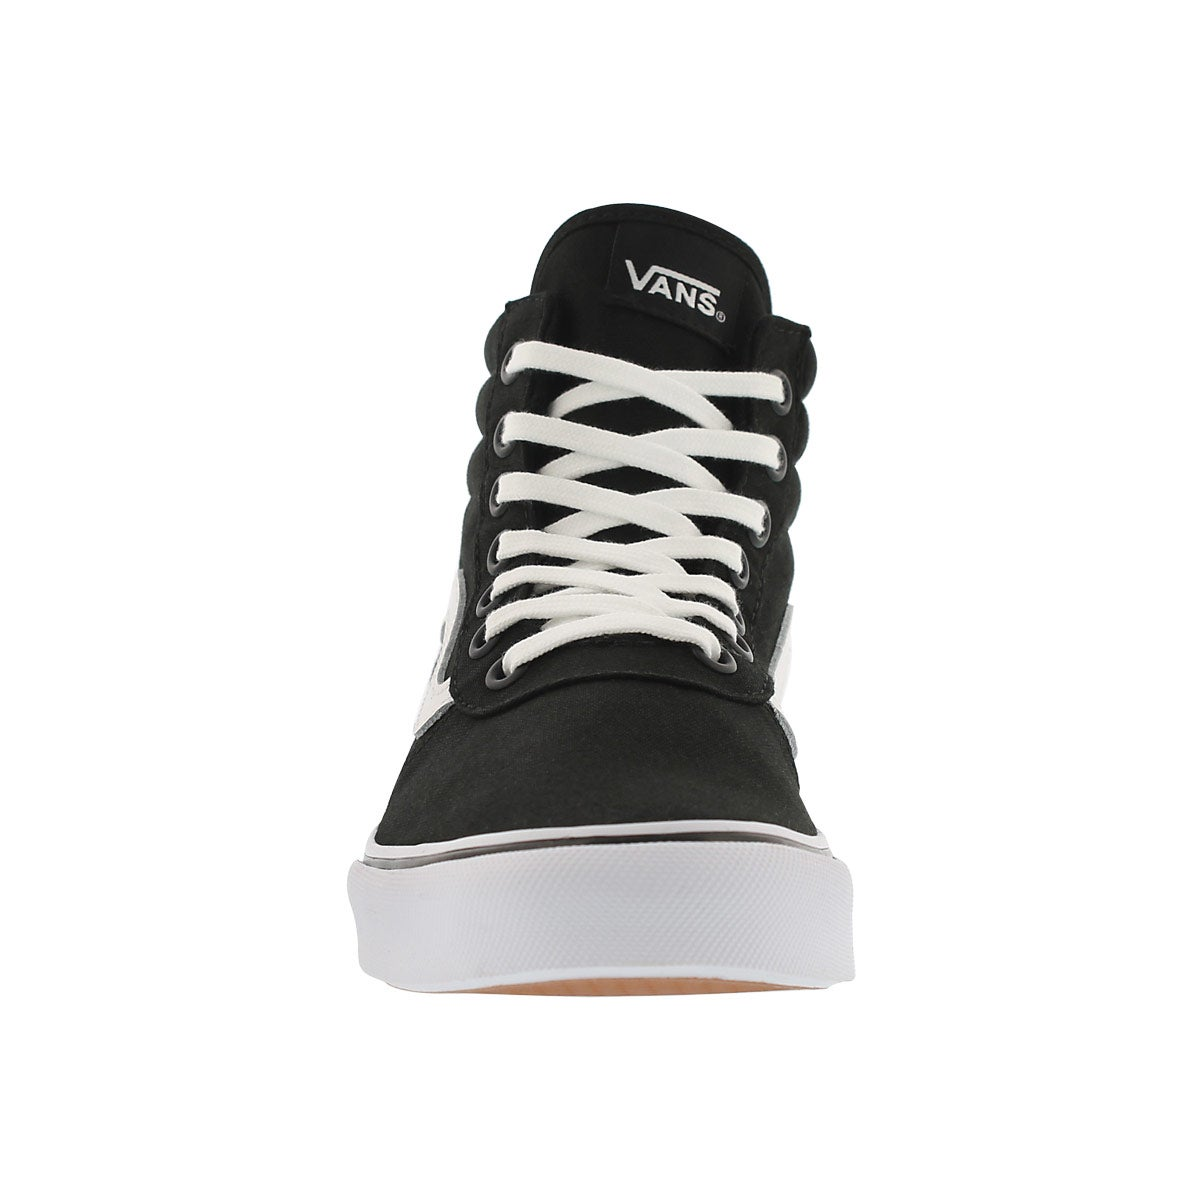 Lds Milton Hi blk/wht lace up sneaker